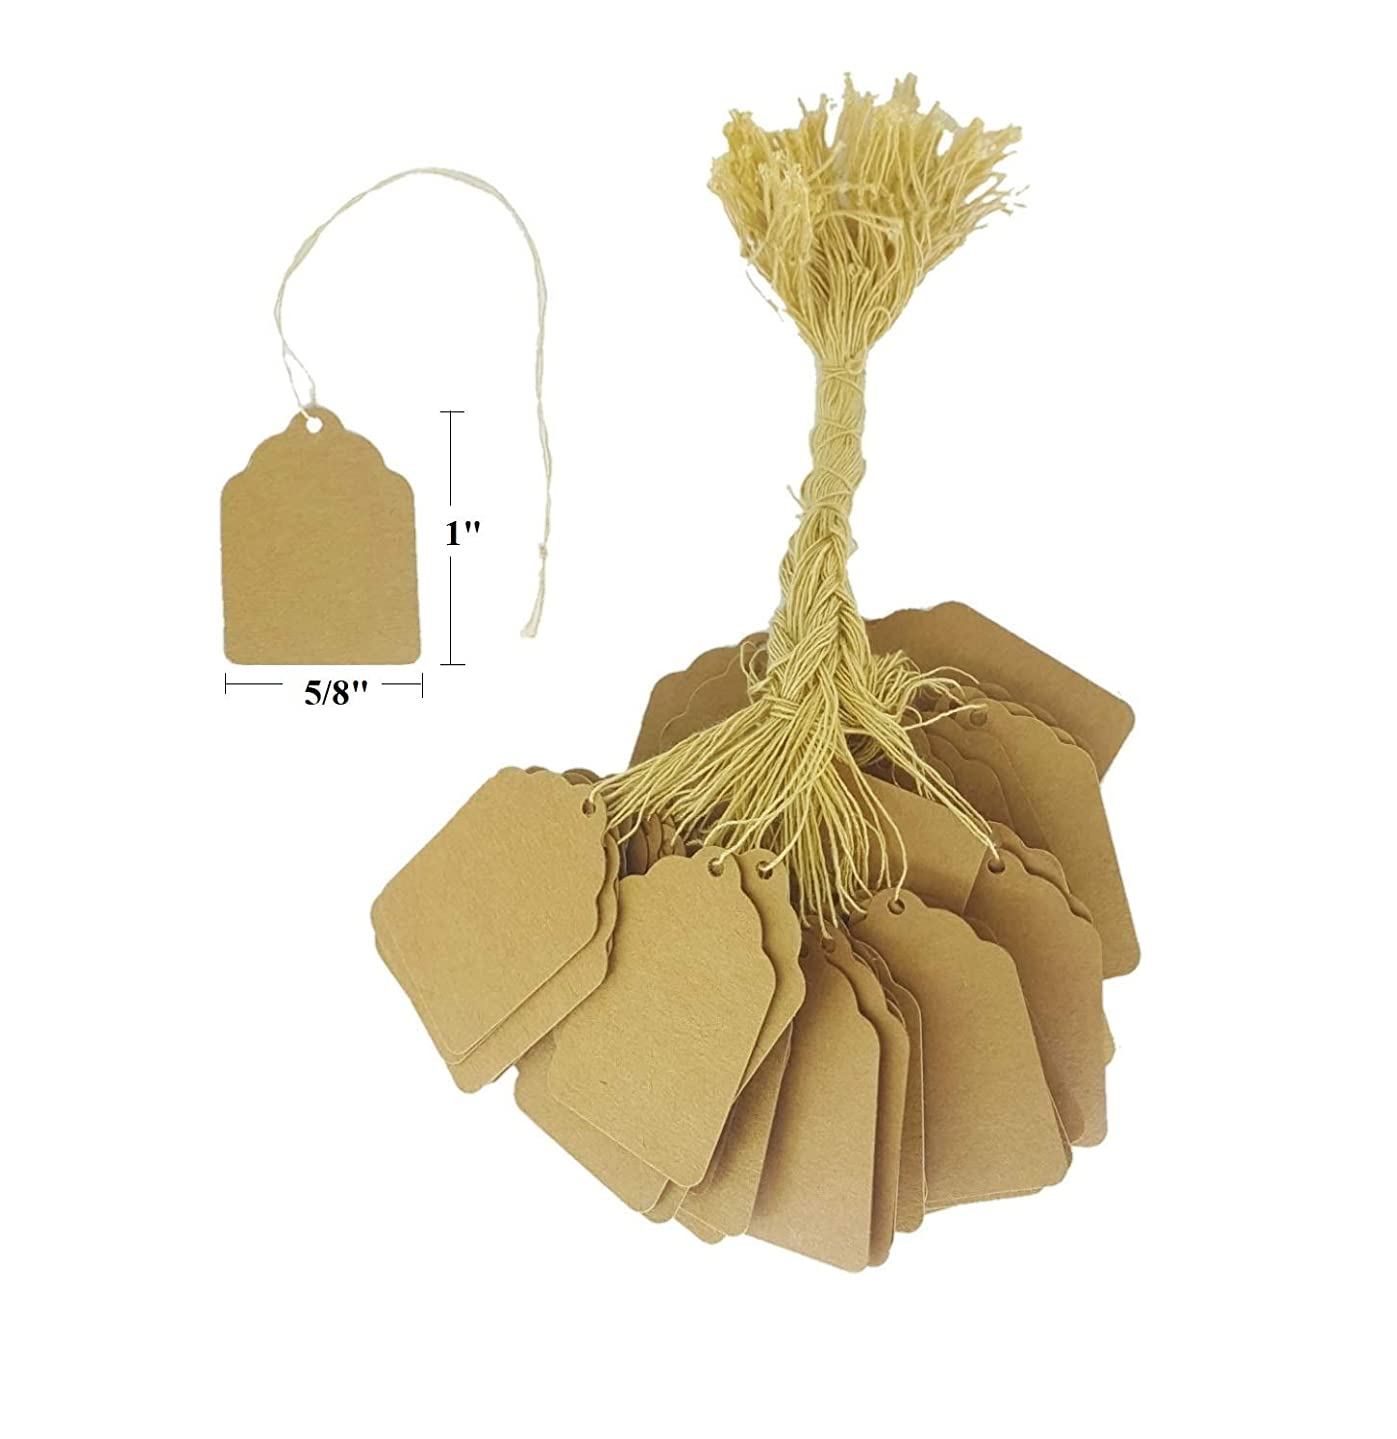 100 Pcs of Paper String Tags, Price Tags, Elegant String Tags Perfect for Gifts, Promotions, Events, or Boutique (1